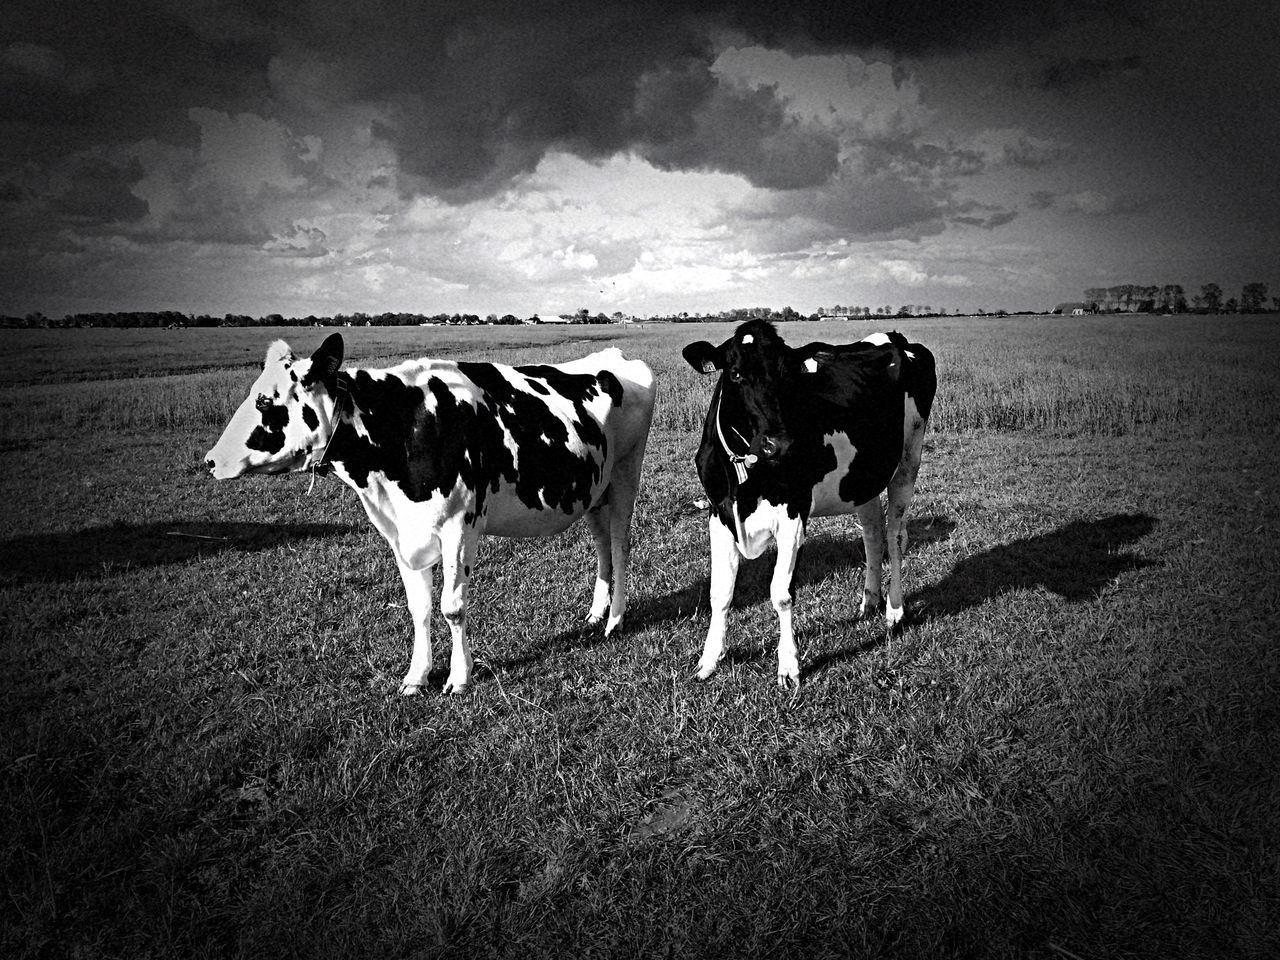 domestic animals, animal themes, mammal, livestock, cow, no people, field, outdoors, sky, landscape, grazing, grass, nature, day